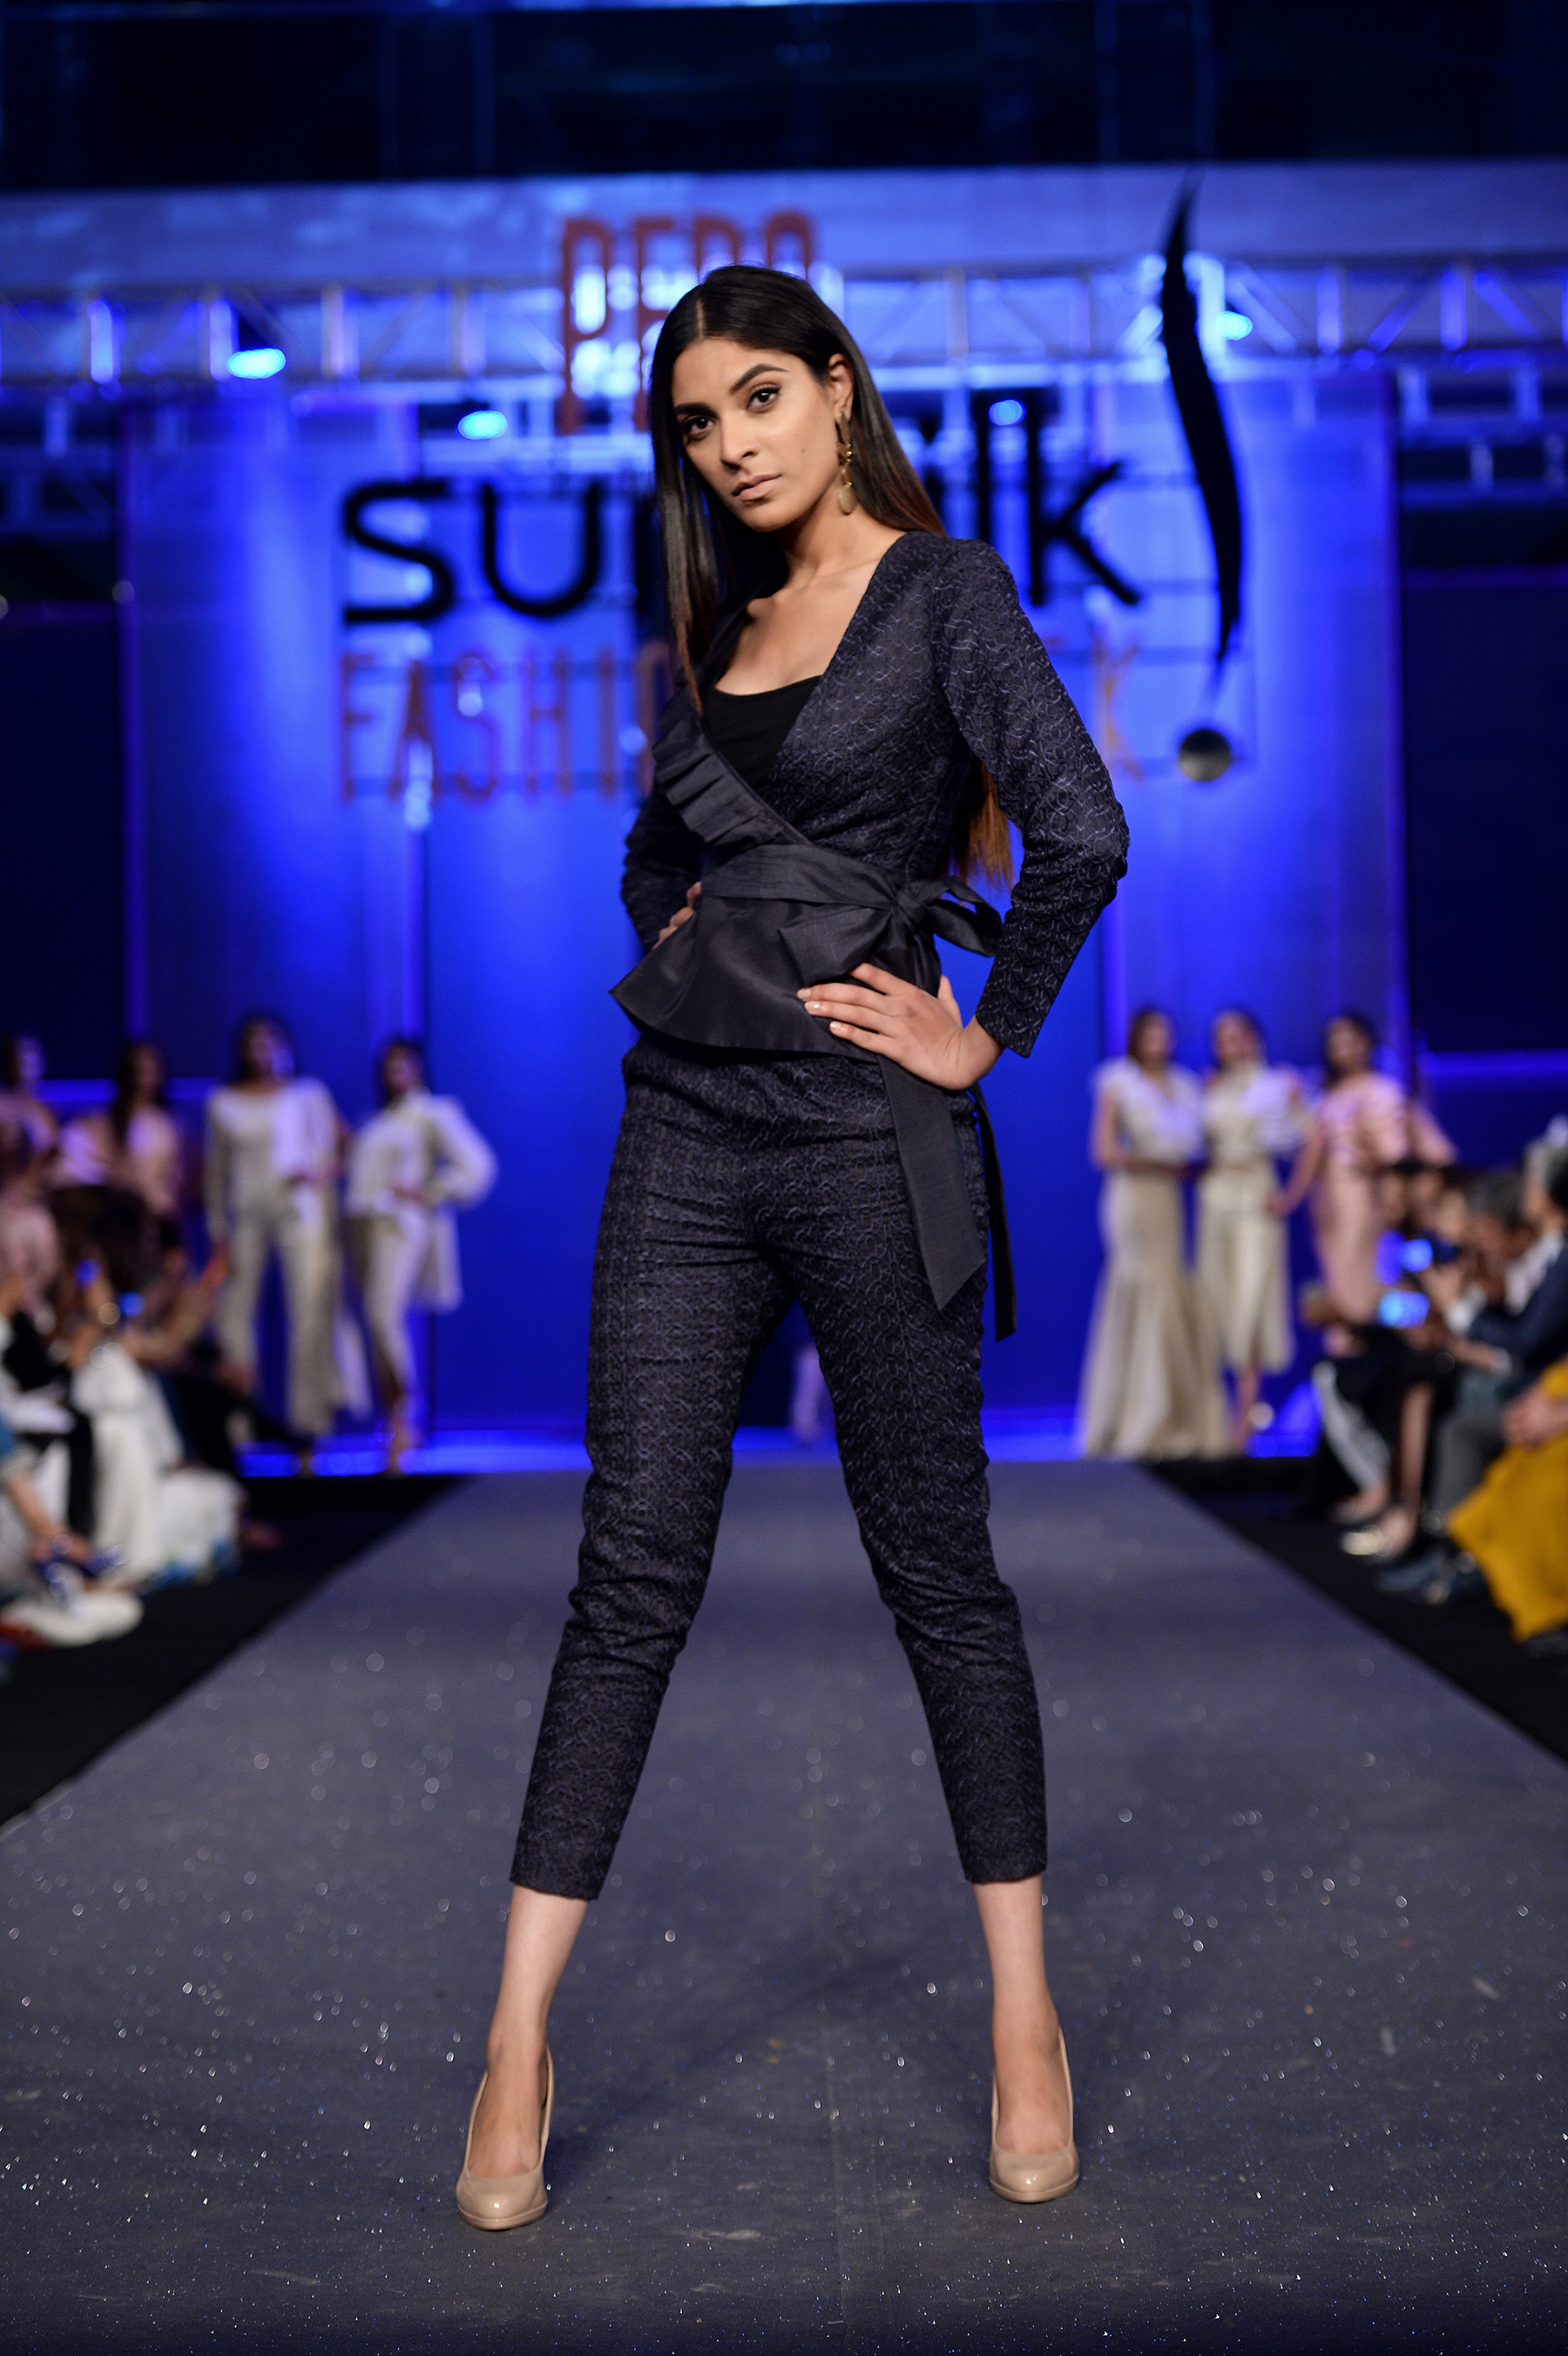 Asifa & Nabeel - PFDC Sunsilk Fashion Week 2017, Photography: Faisal Farooqui and his team at Dragonfly